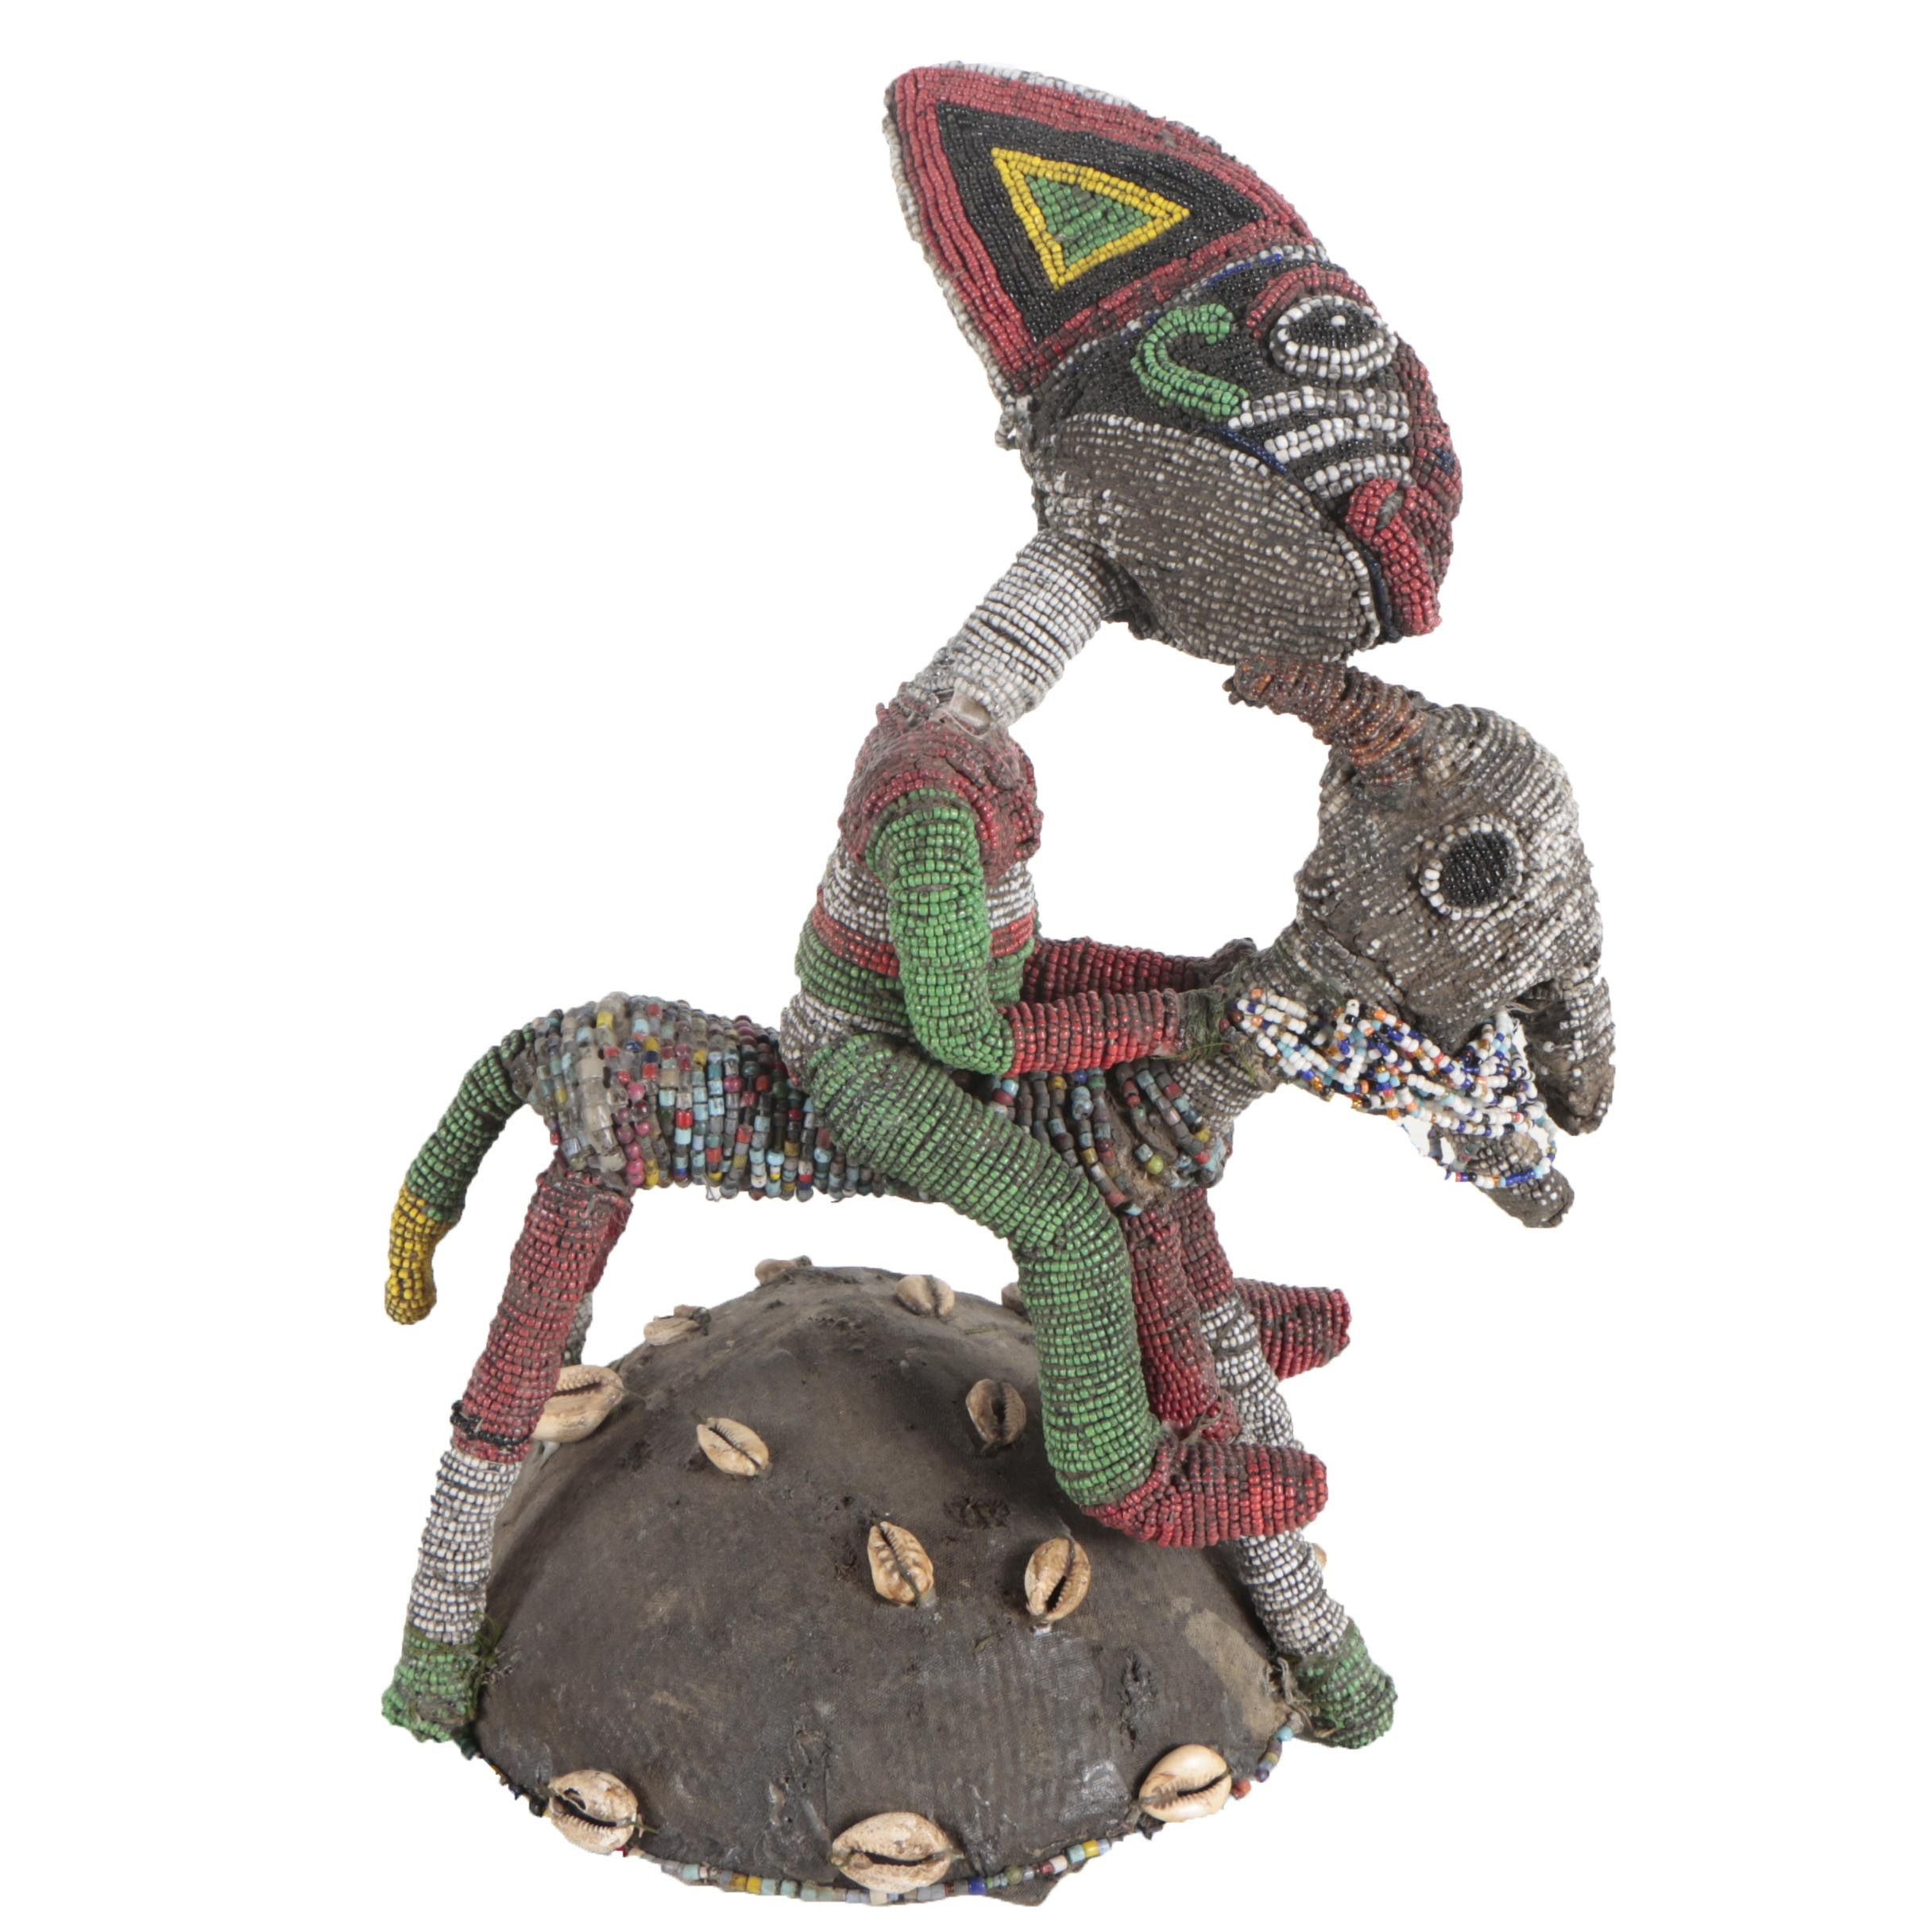 20th Century Beaded Equestrian Figure from Cameroon